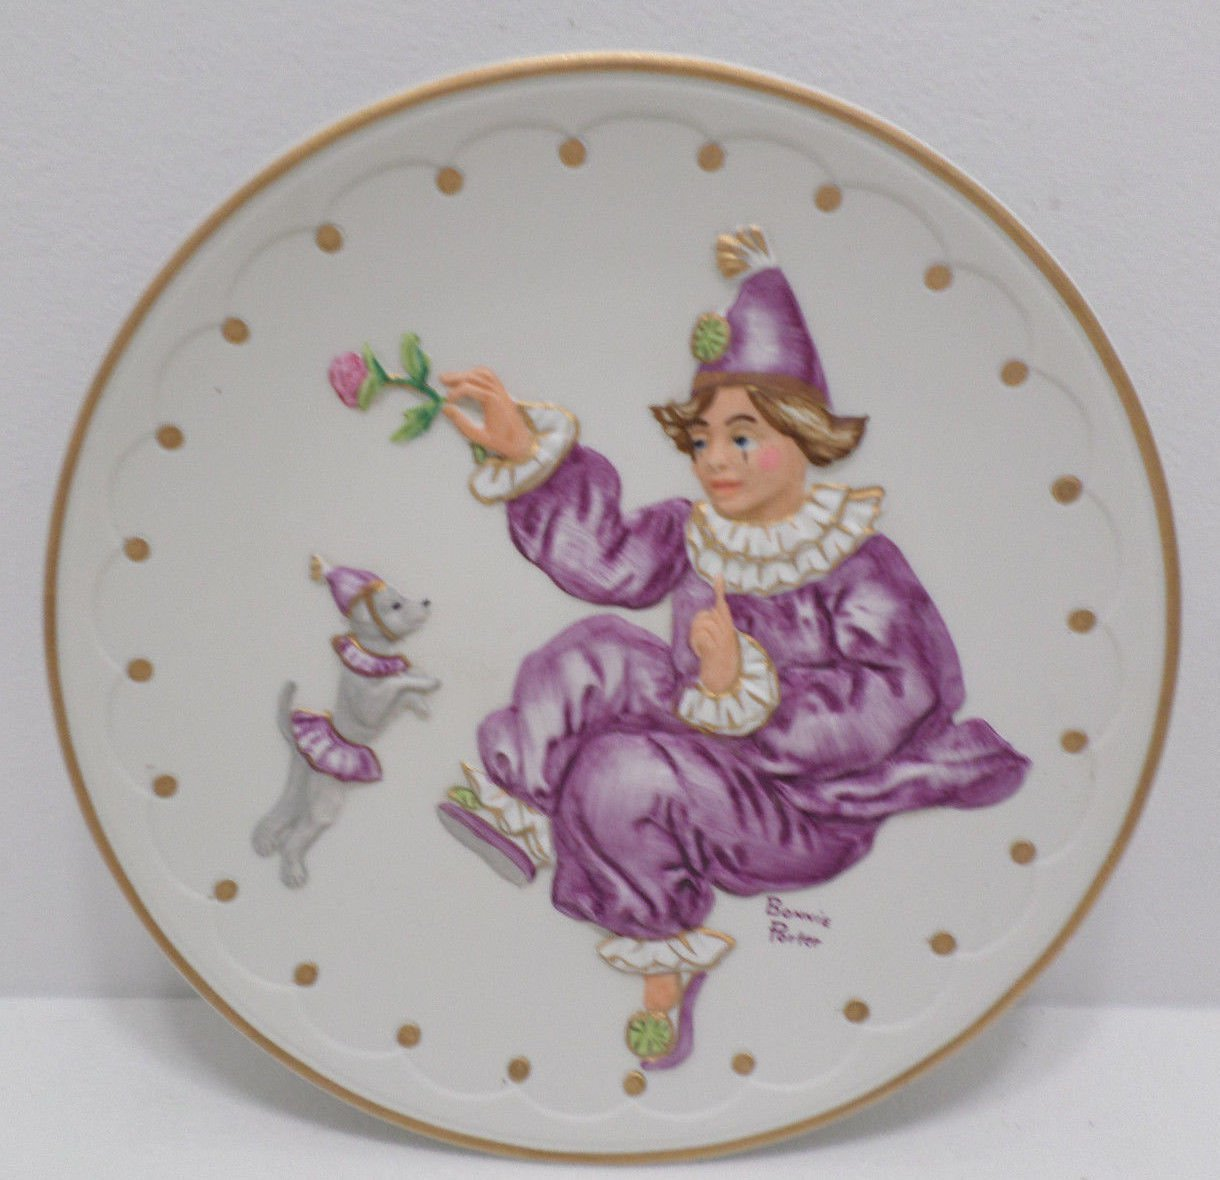 Collector Plate Act 1 by Bonnie Porter the Performance Series Limited Ed.